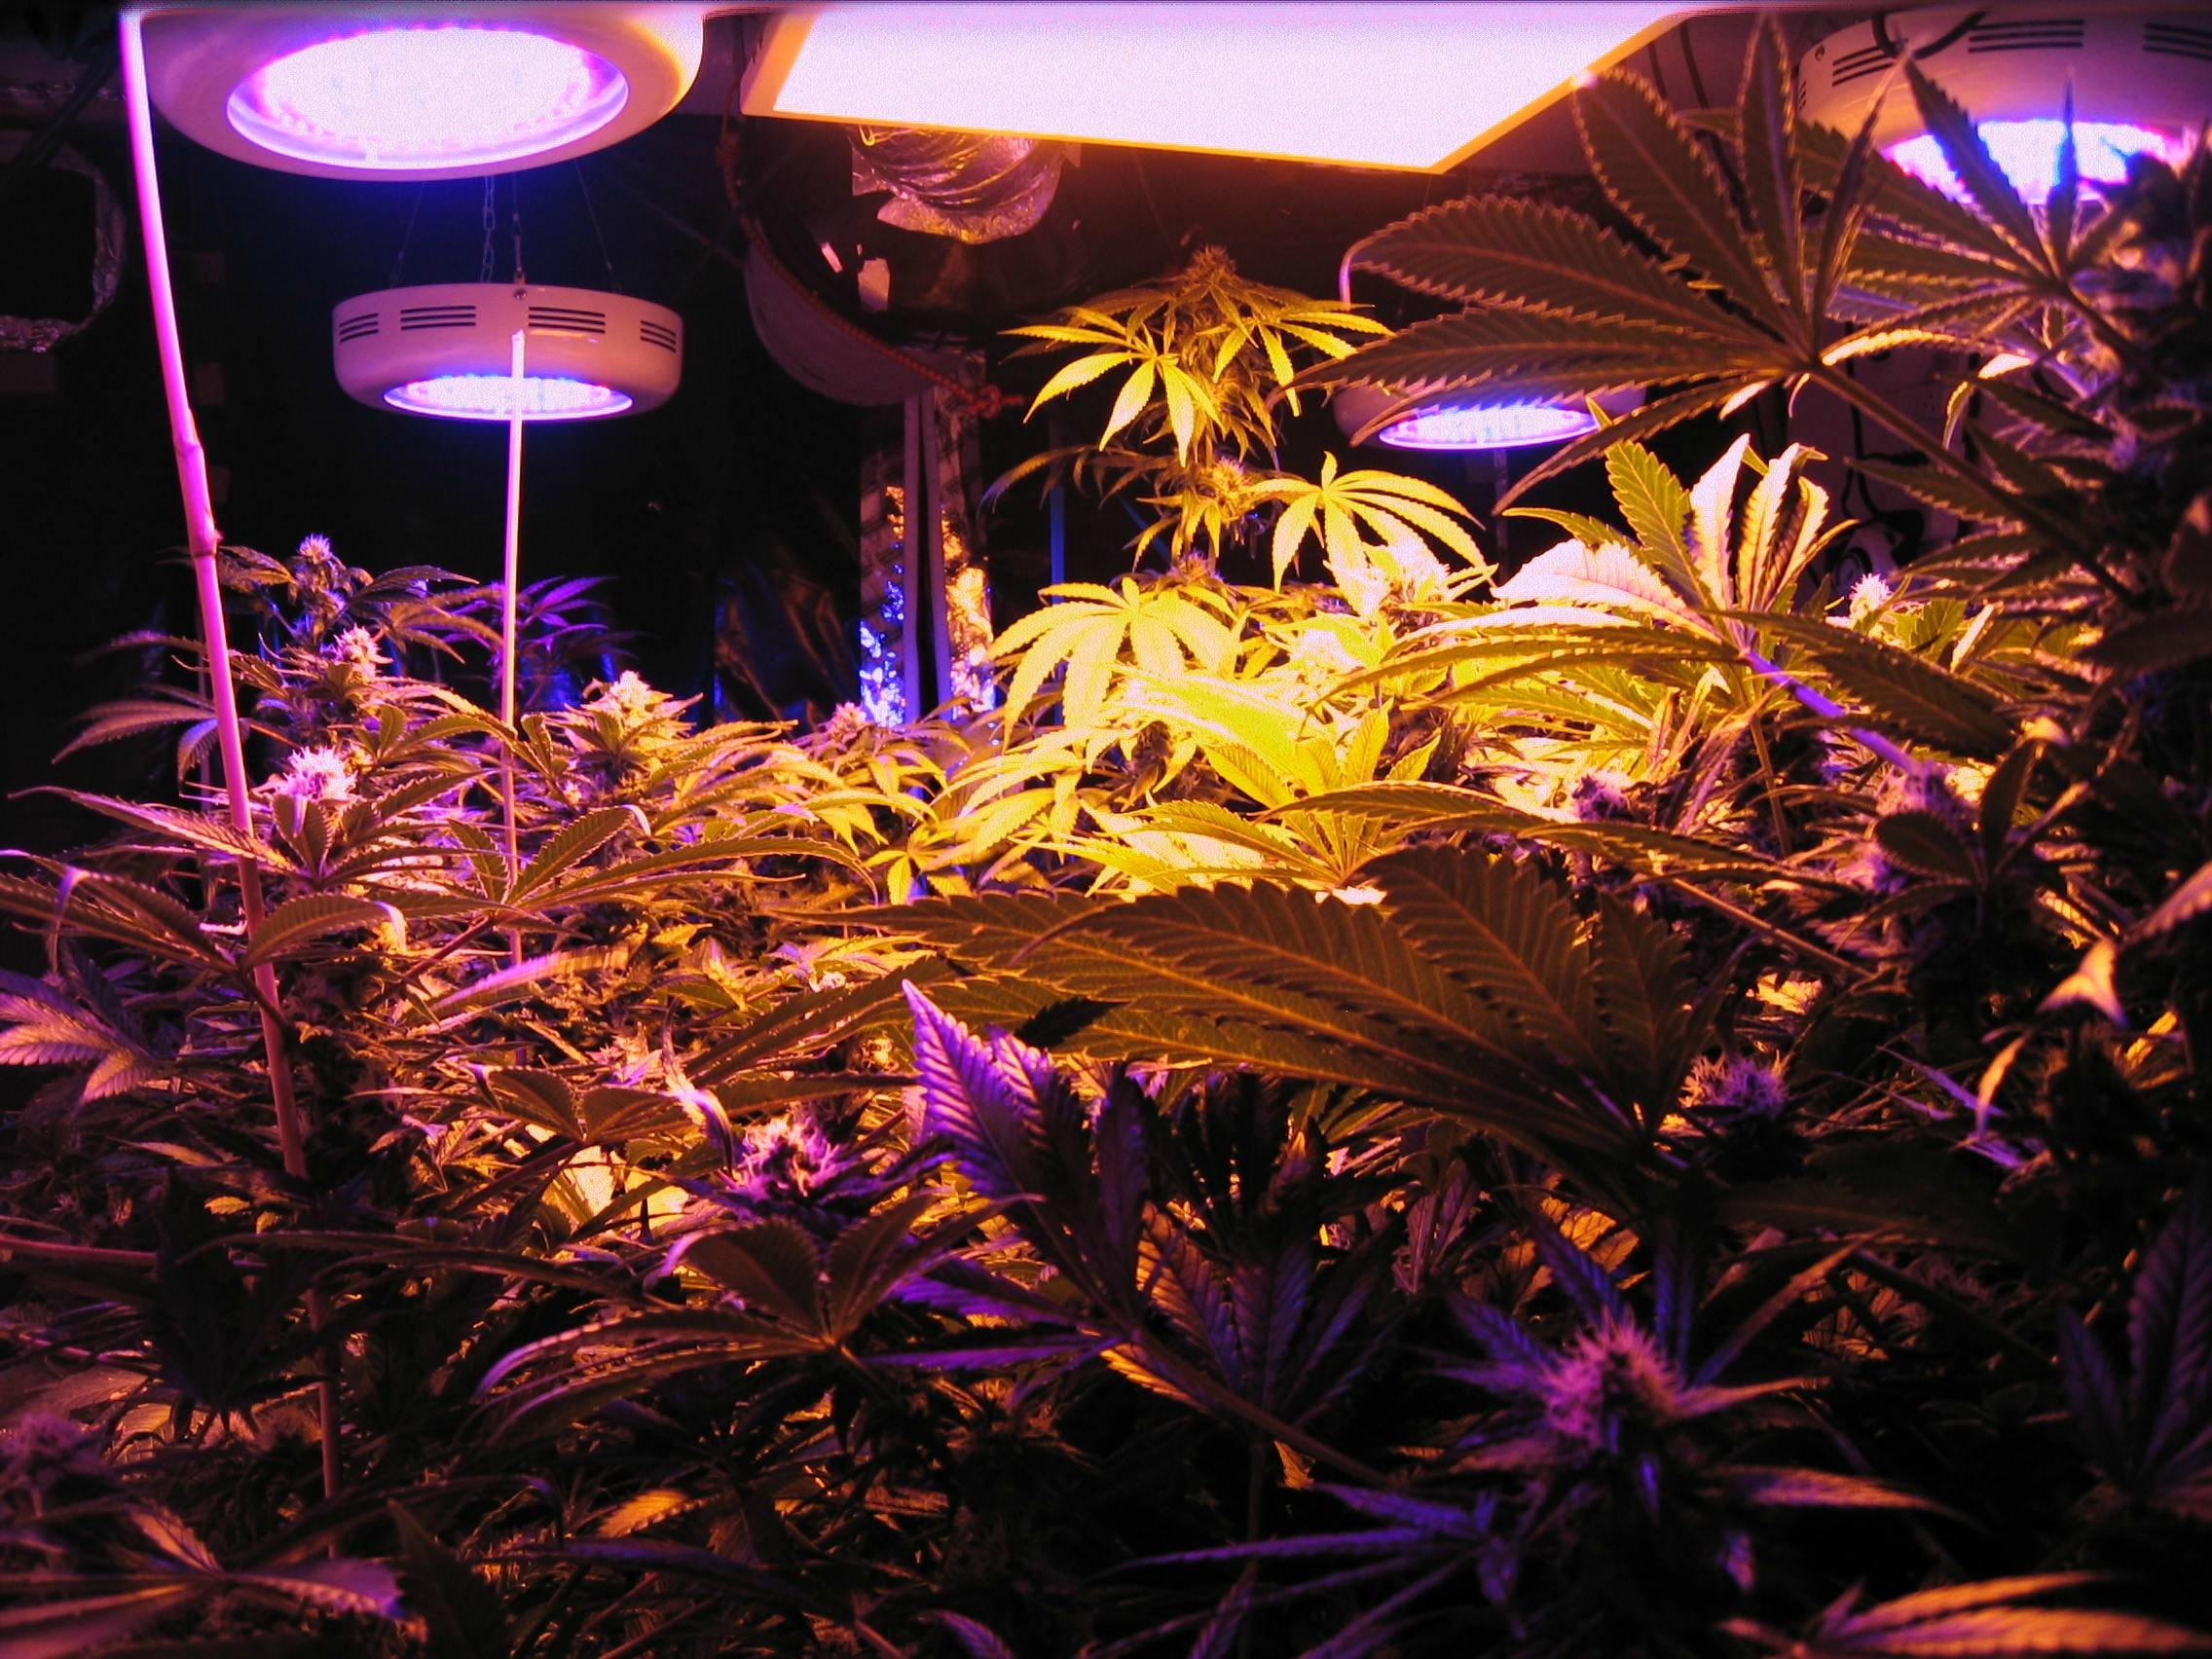 Ask Alex #1: Which light do I use to grow my cannabis?